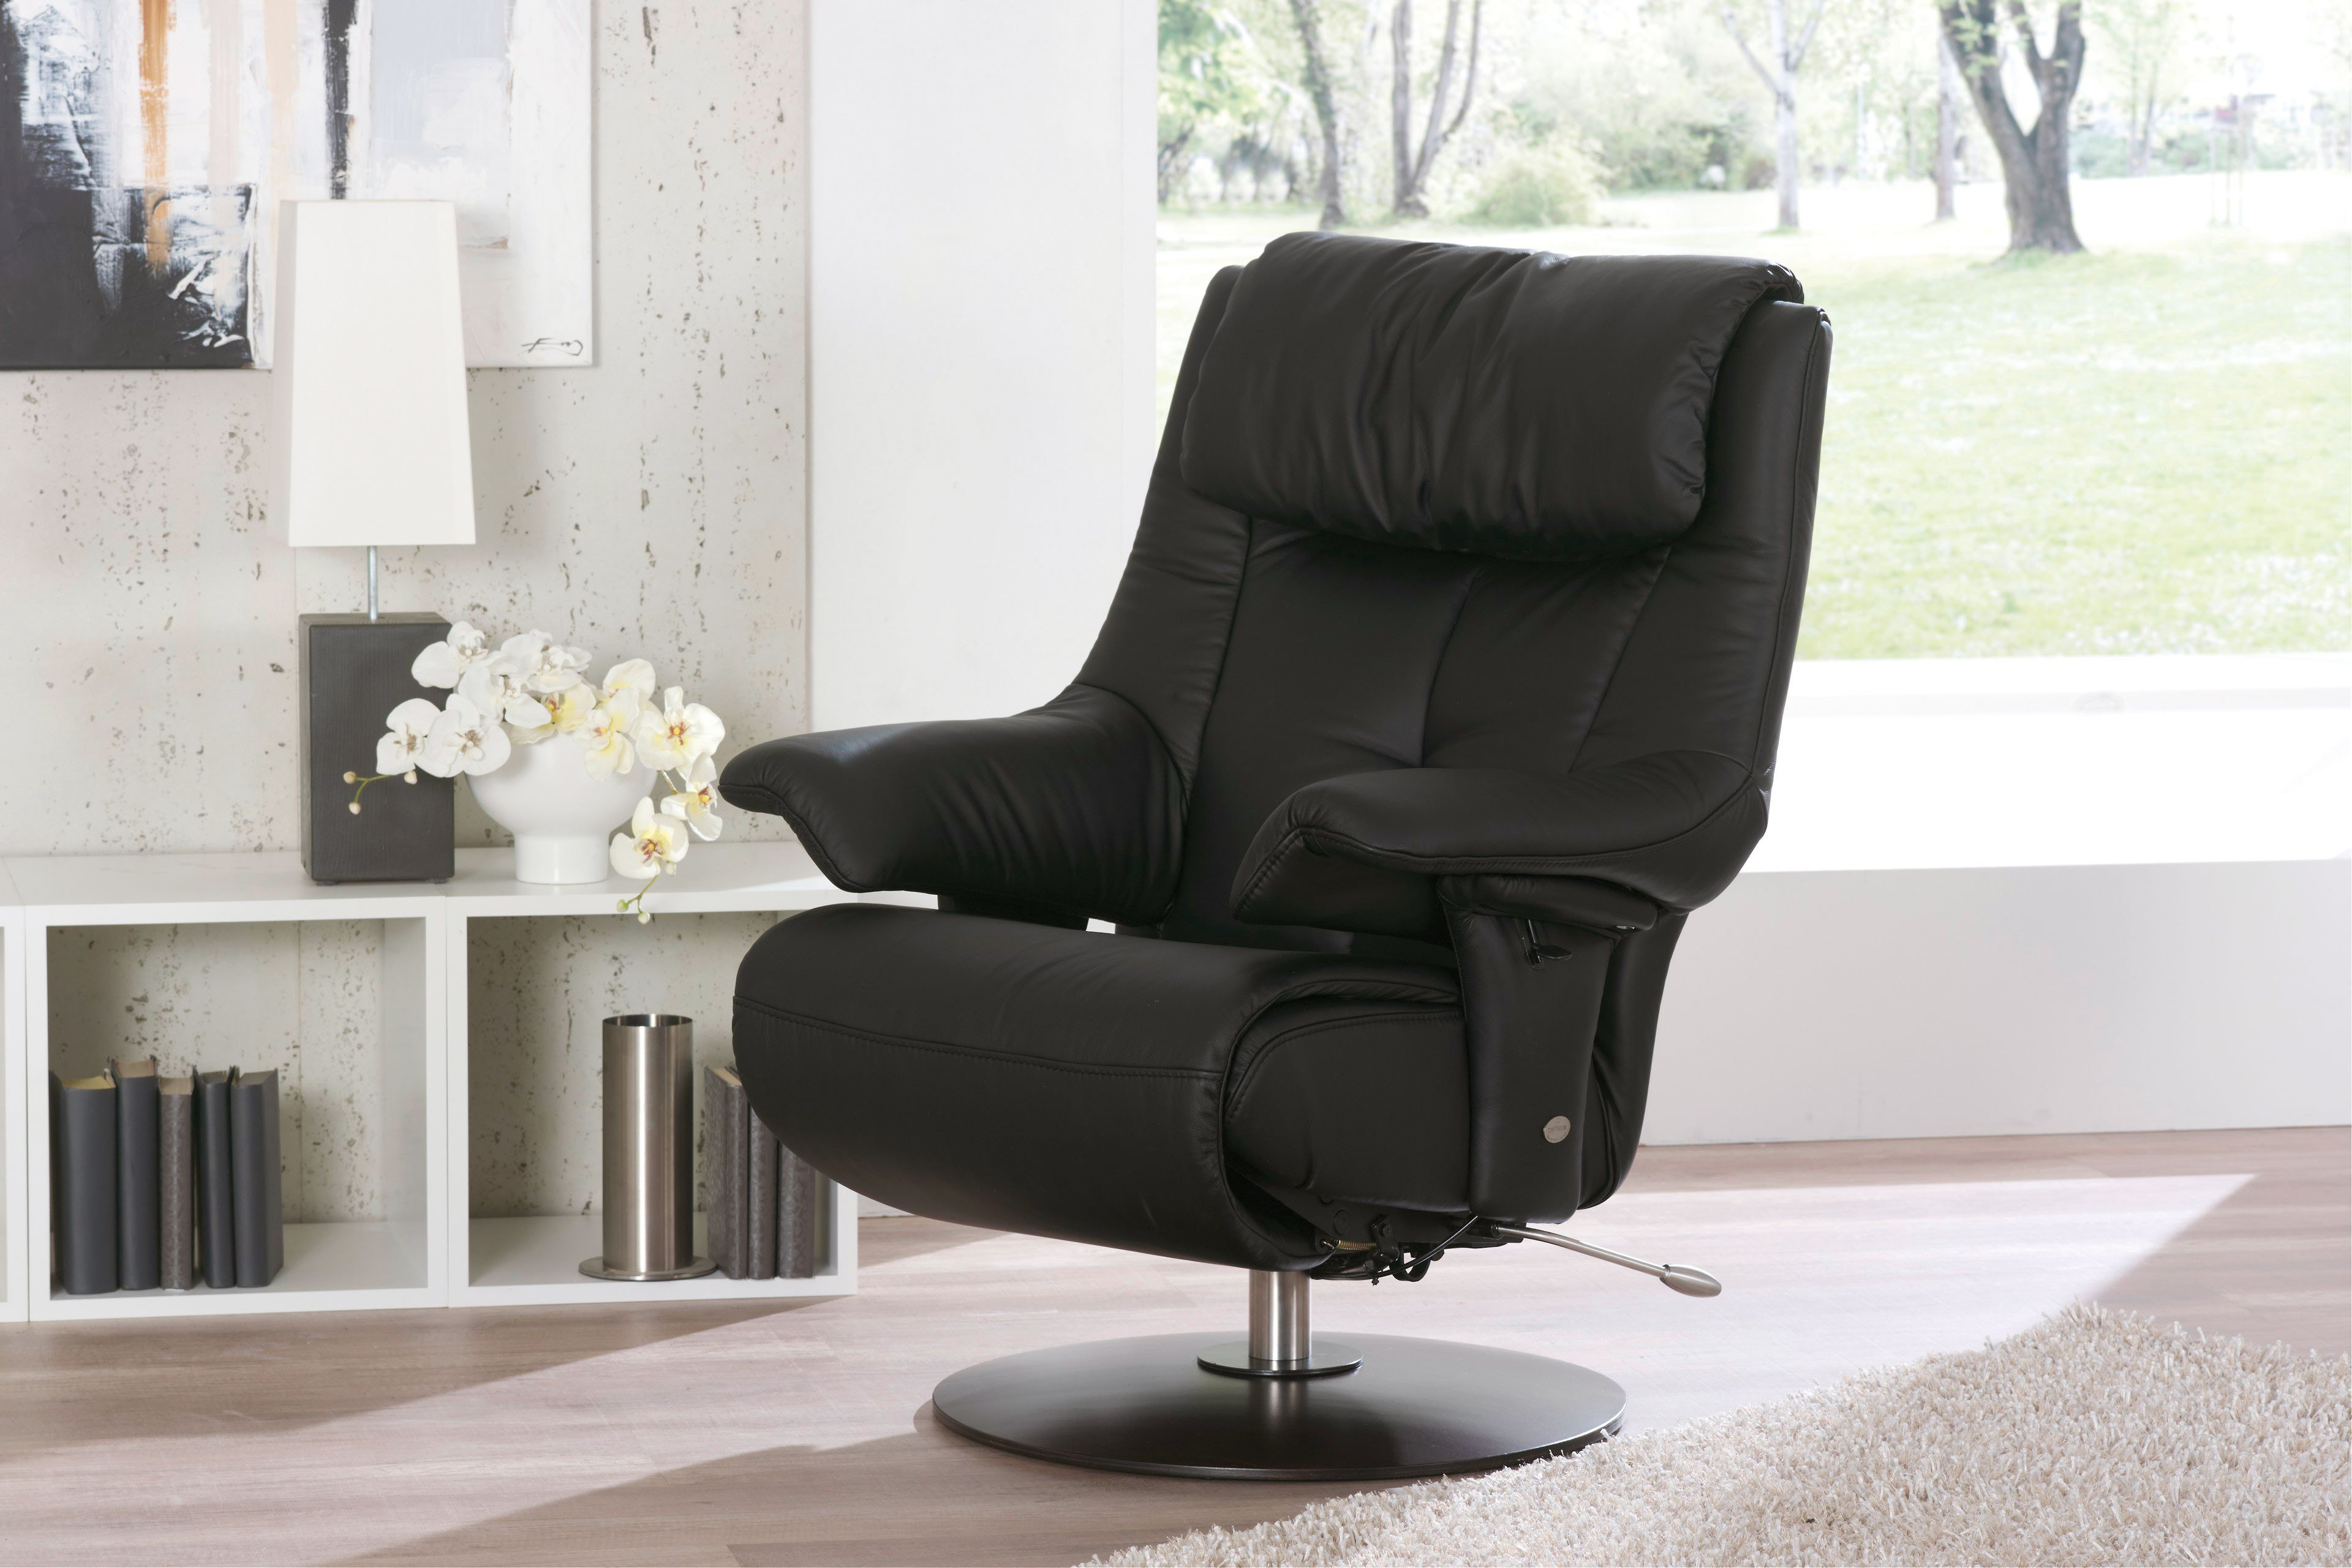 Sessel Himolla Cosyform 7501 Von Himolla Relaxsessel Black